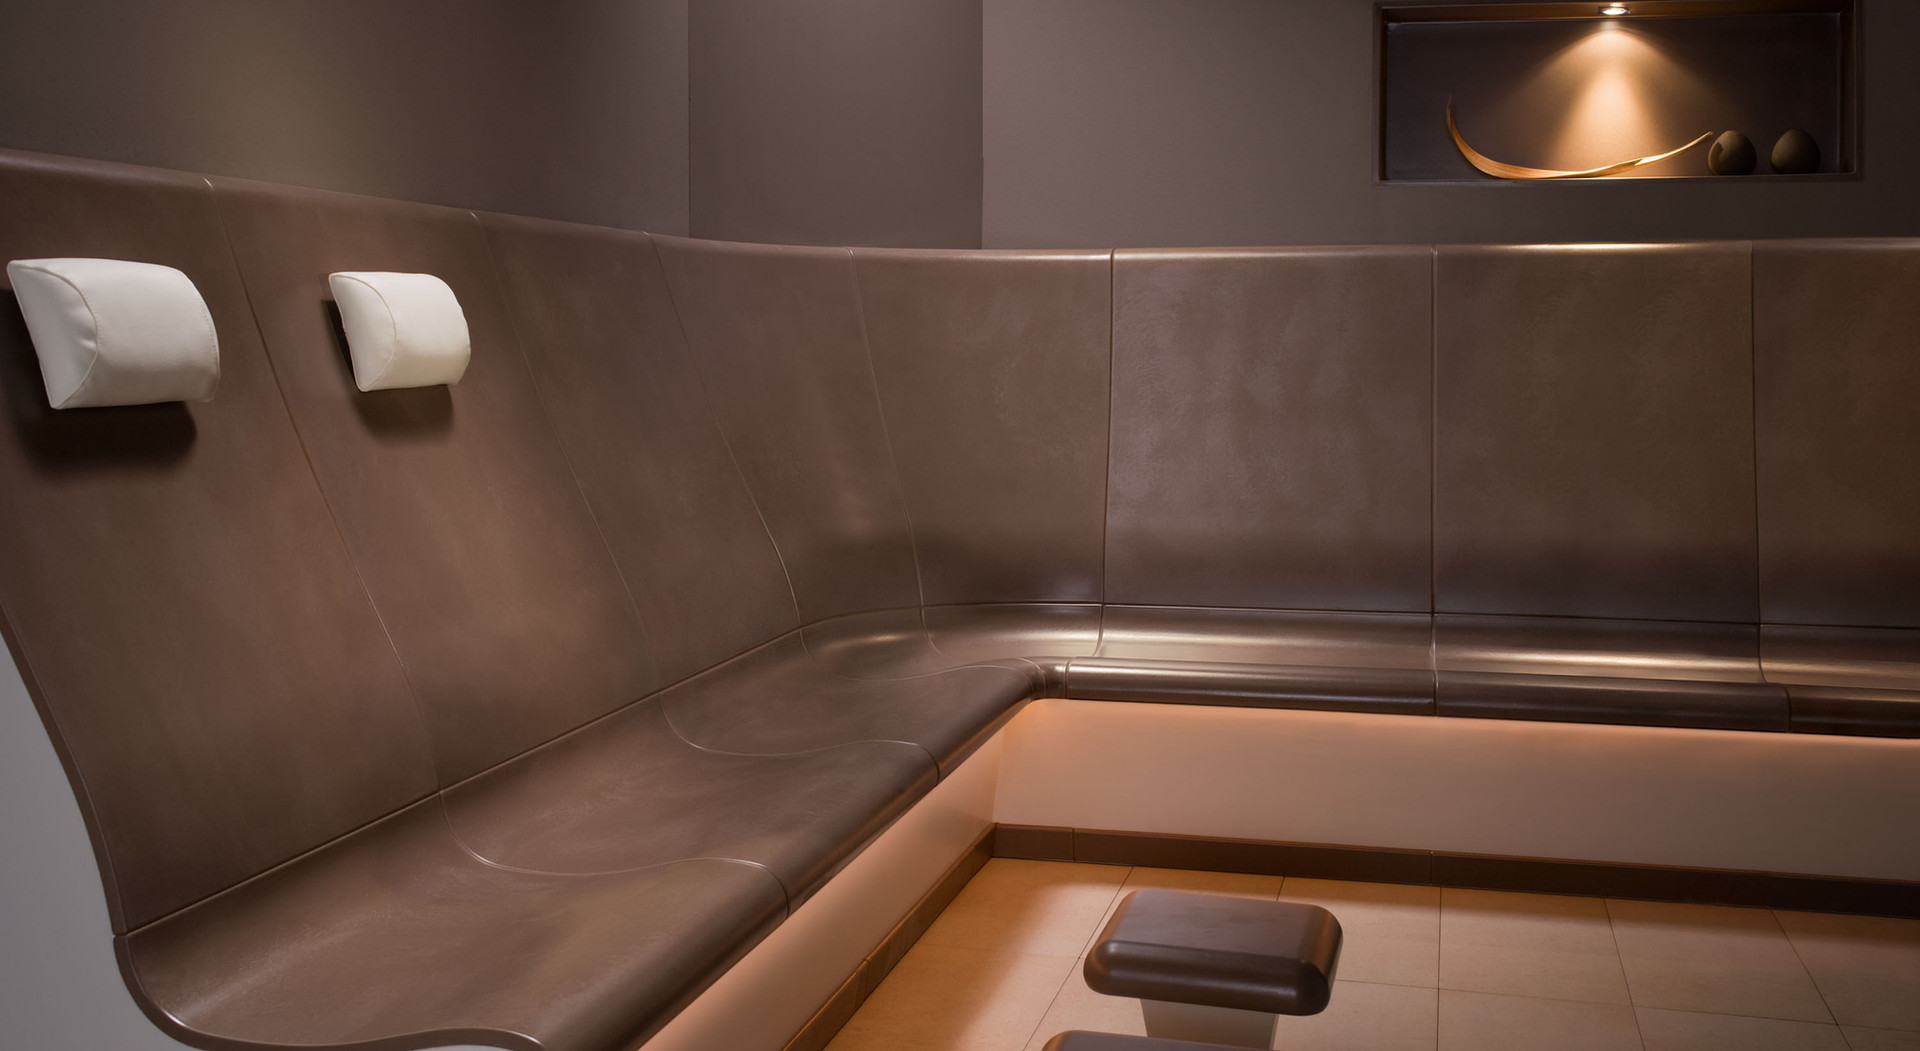 Photo: Sommerhuber  - Dry Room Benches